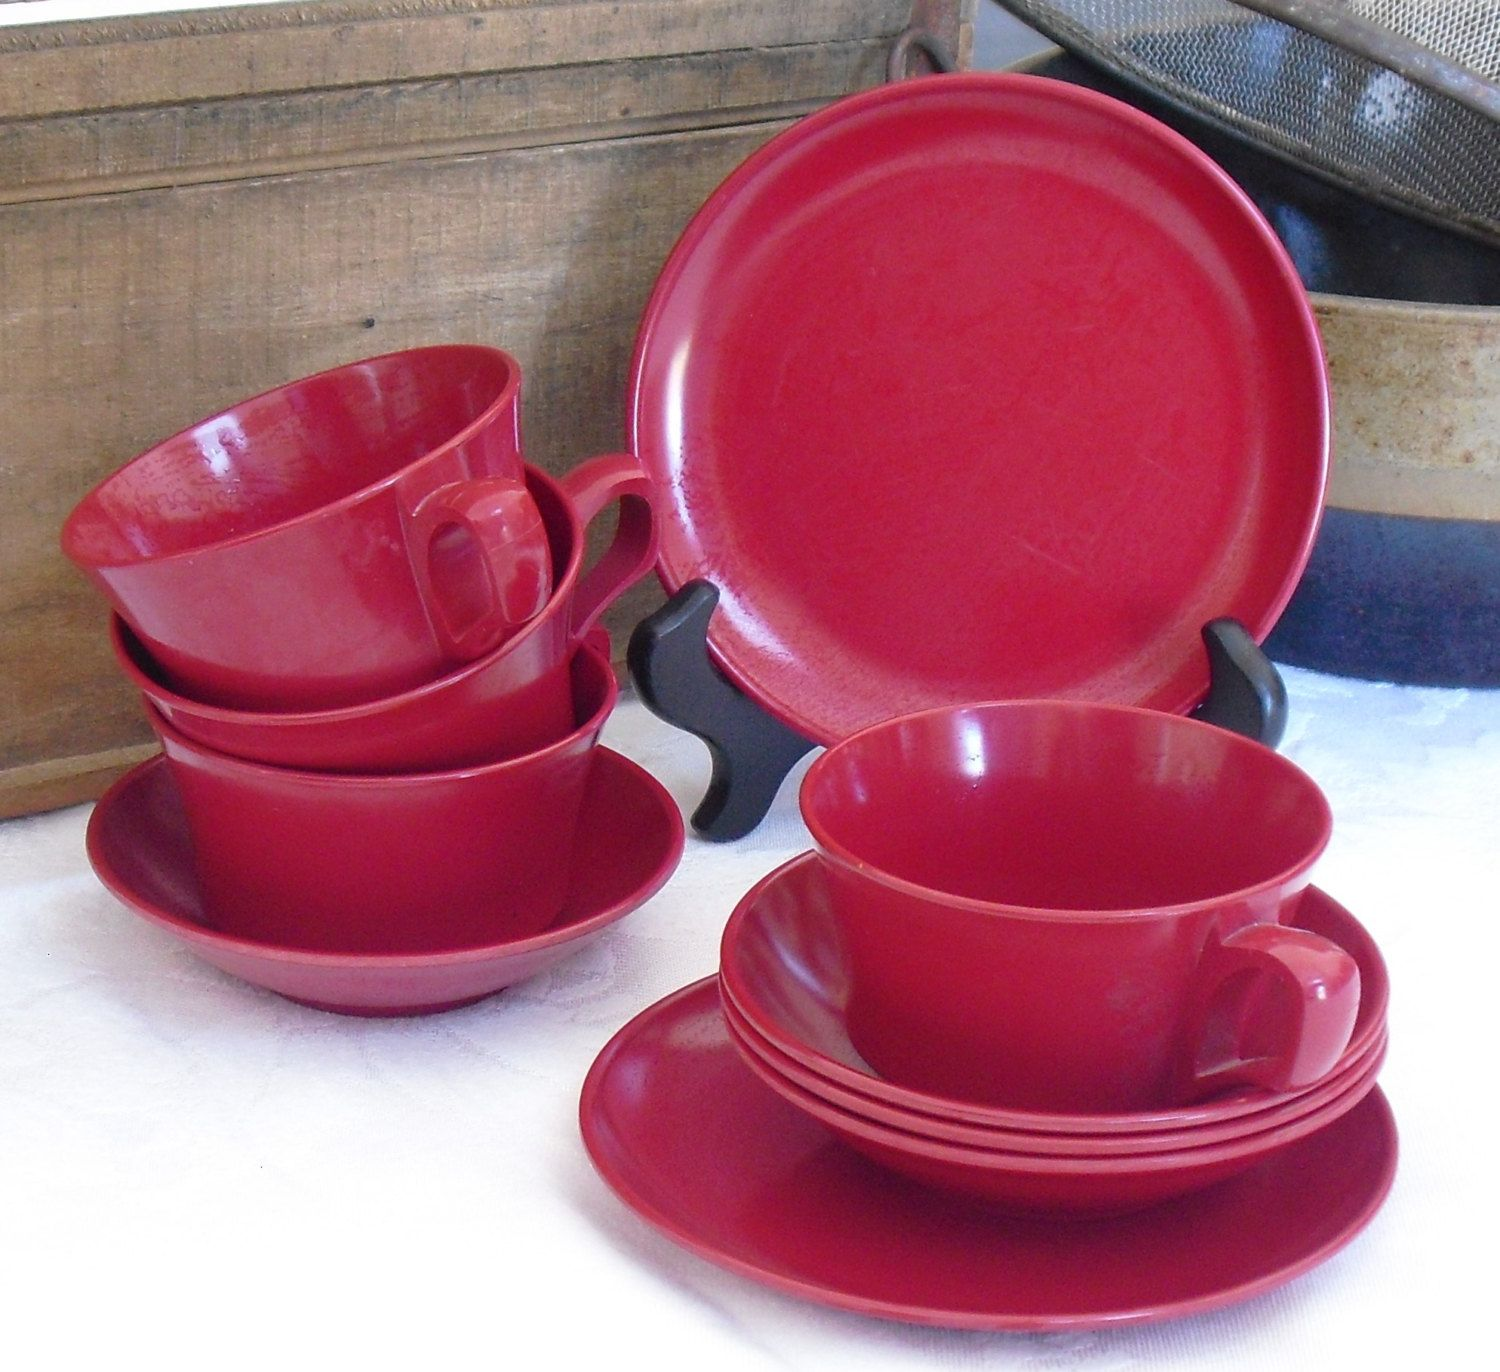 Sold Vintage Red Melamine Cups Bowls Plates Allied Chemical 1950s Picnic PlatesCamping SuppliesDish SetsPicnic